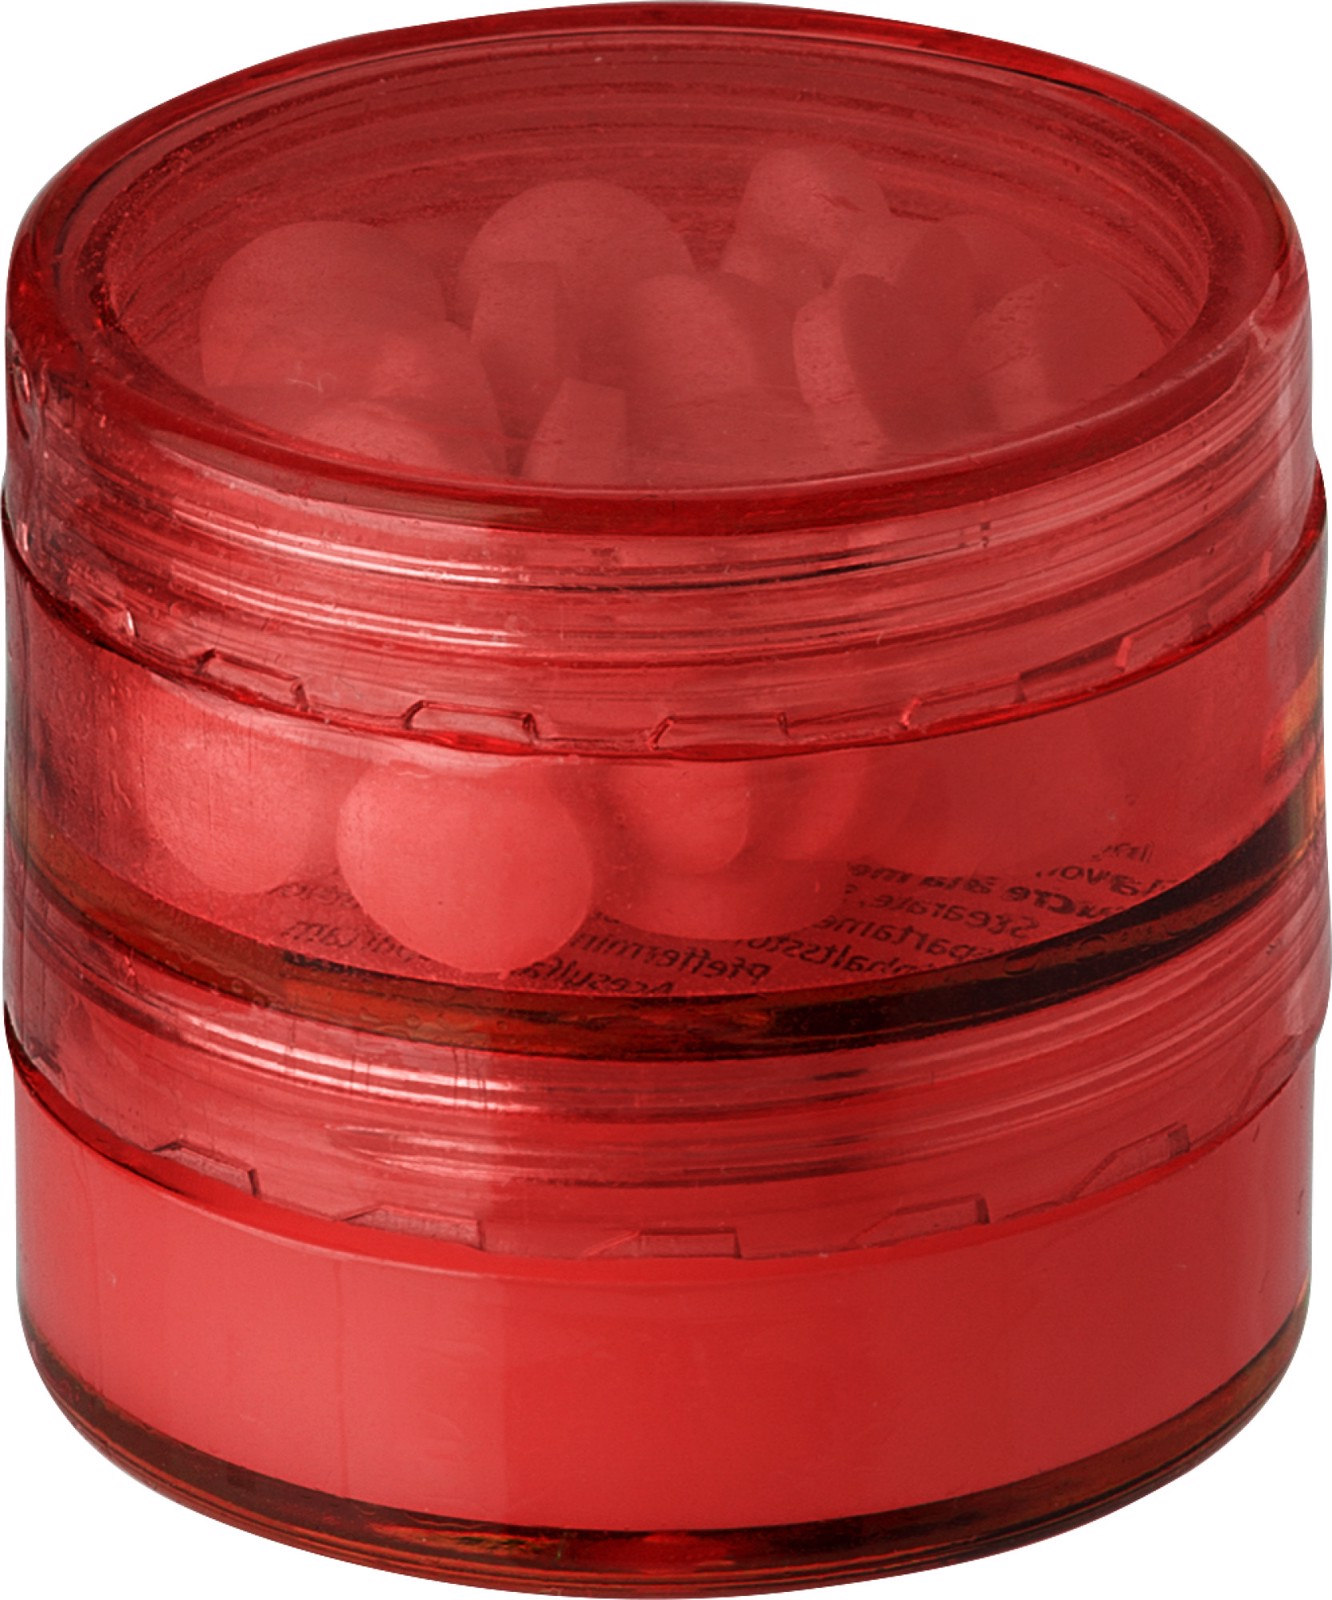 PS holder with mints and lip balm - Red